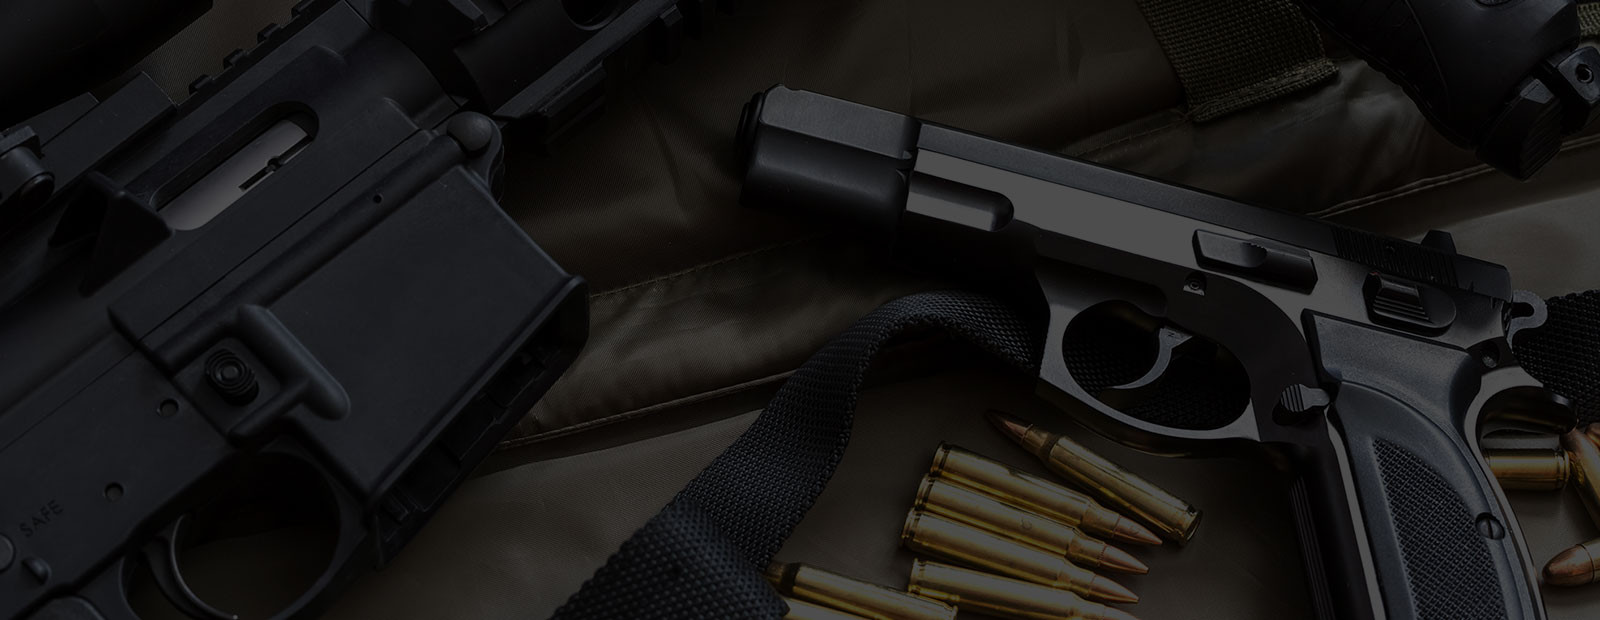 Arms Preservation, Inc. Pistol, Rifle, and ammo